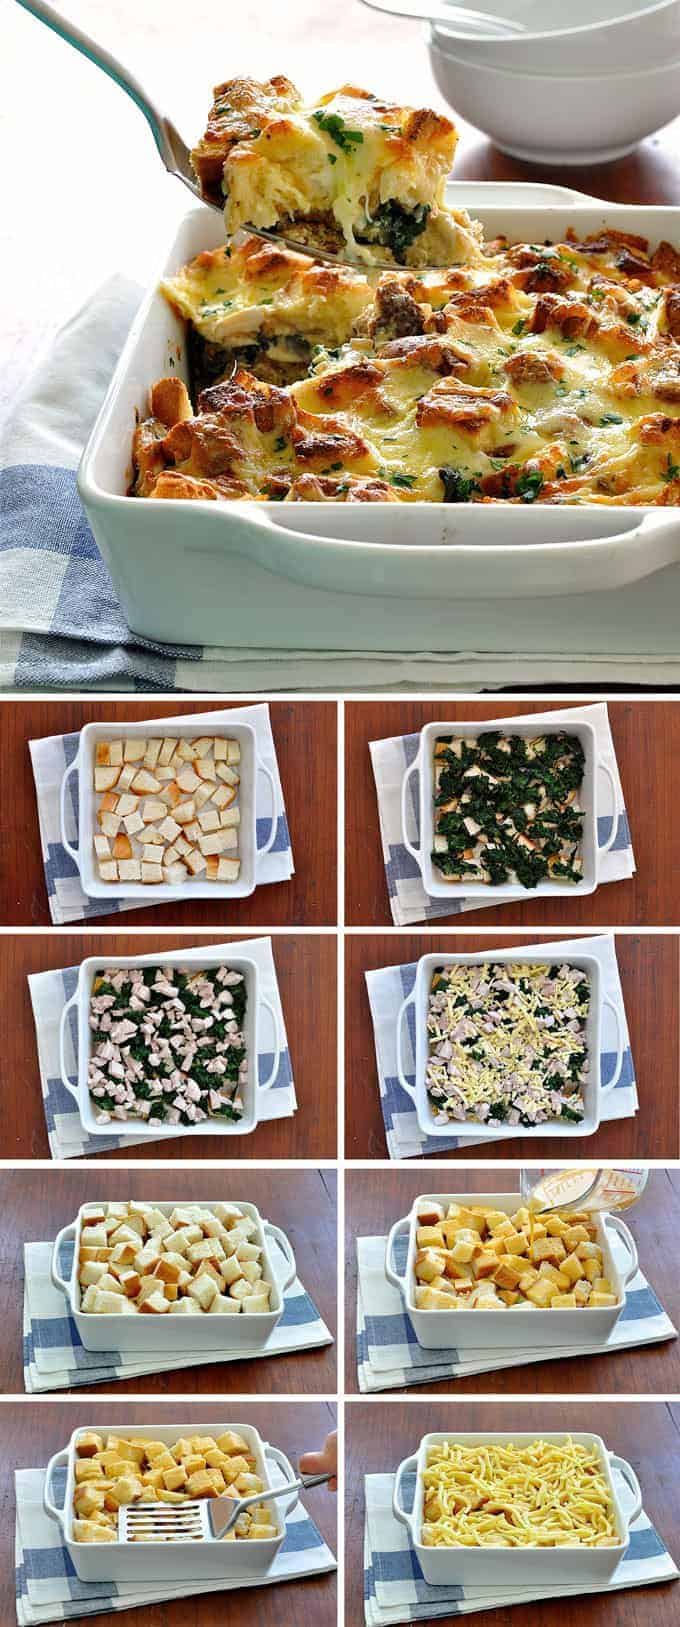 Spooning out Chicken and Spinach Strata, and process photos